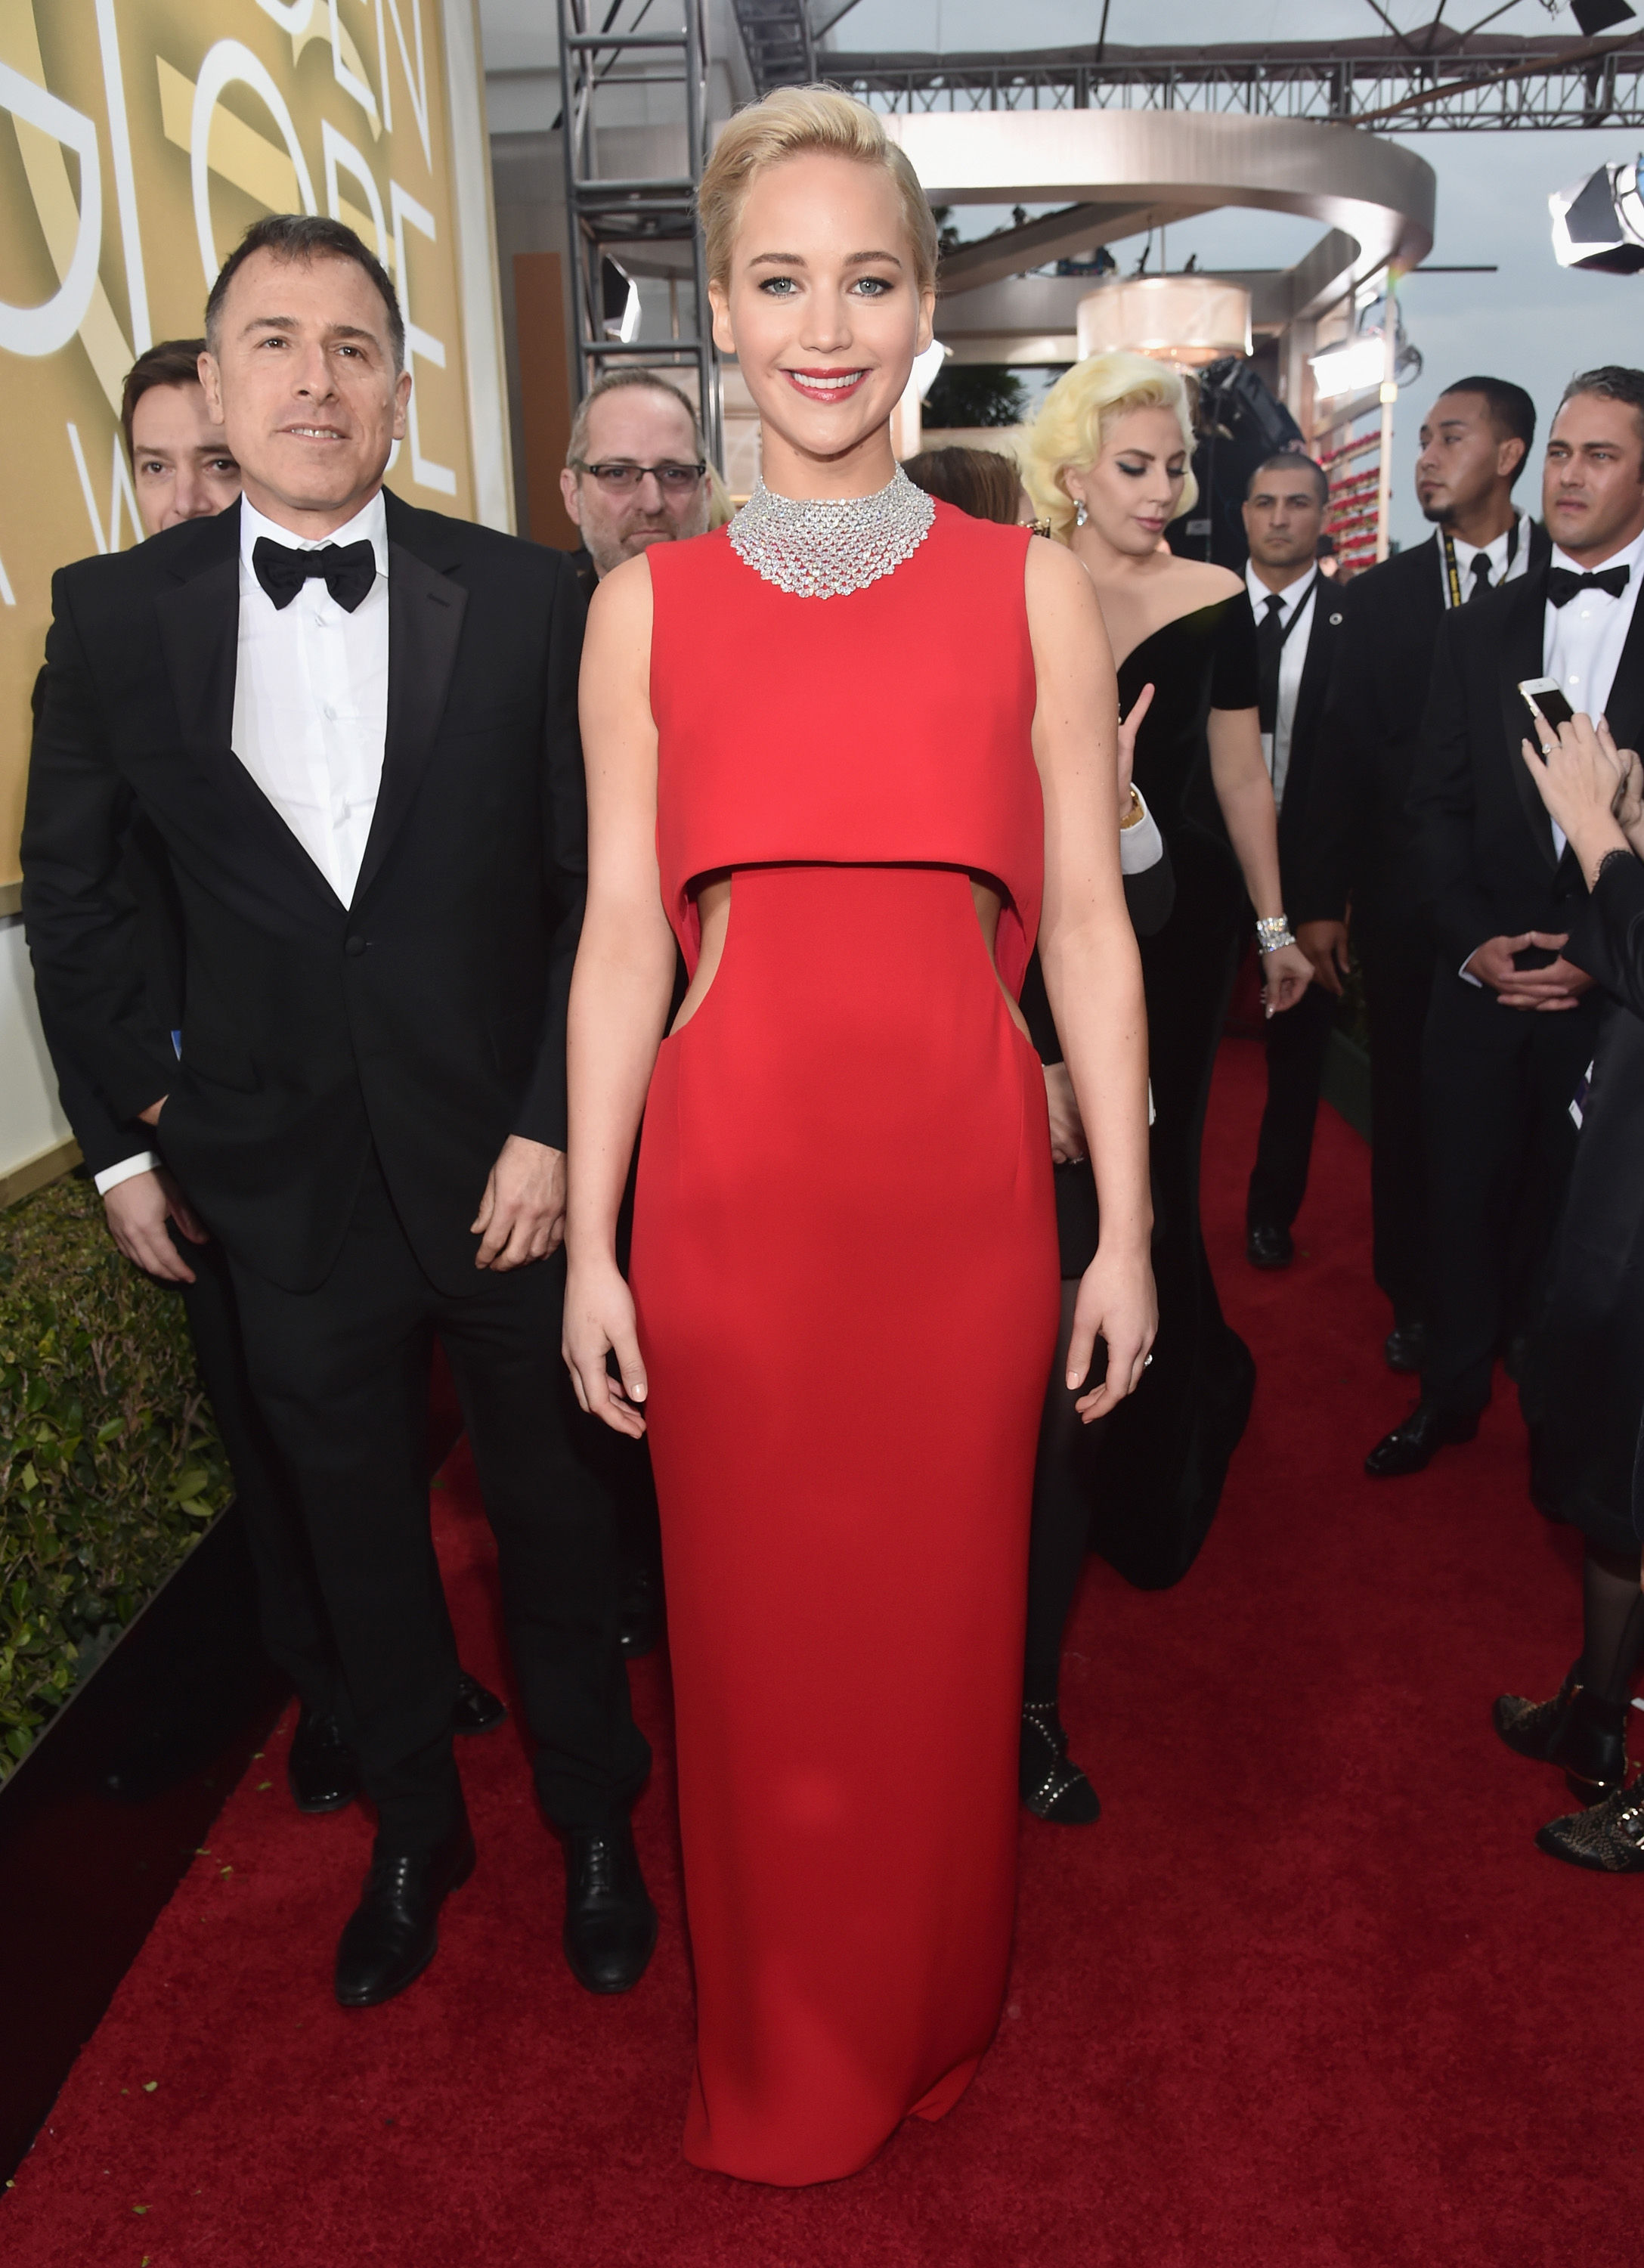 Jennifer Lawrence arrives to the 73rd Annual Golden Globe Awards on Jan. 10, 2016 in Beverly Hills.